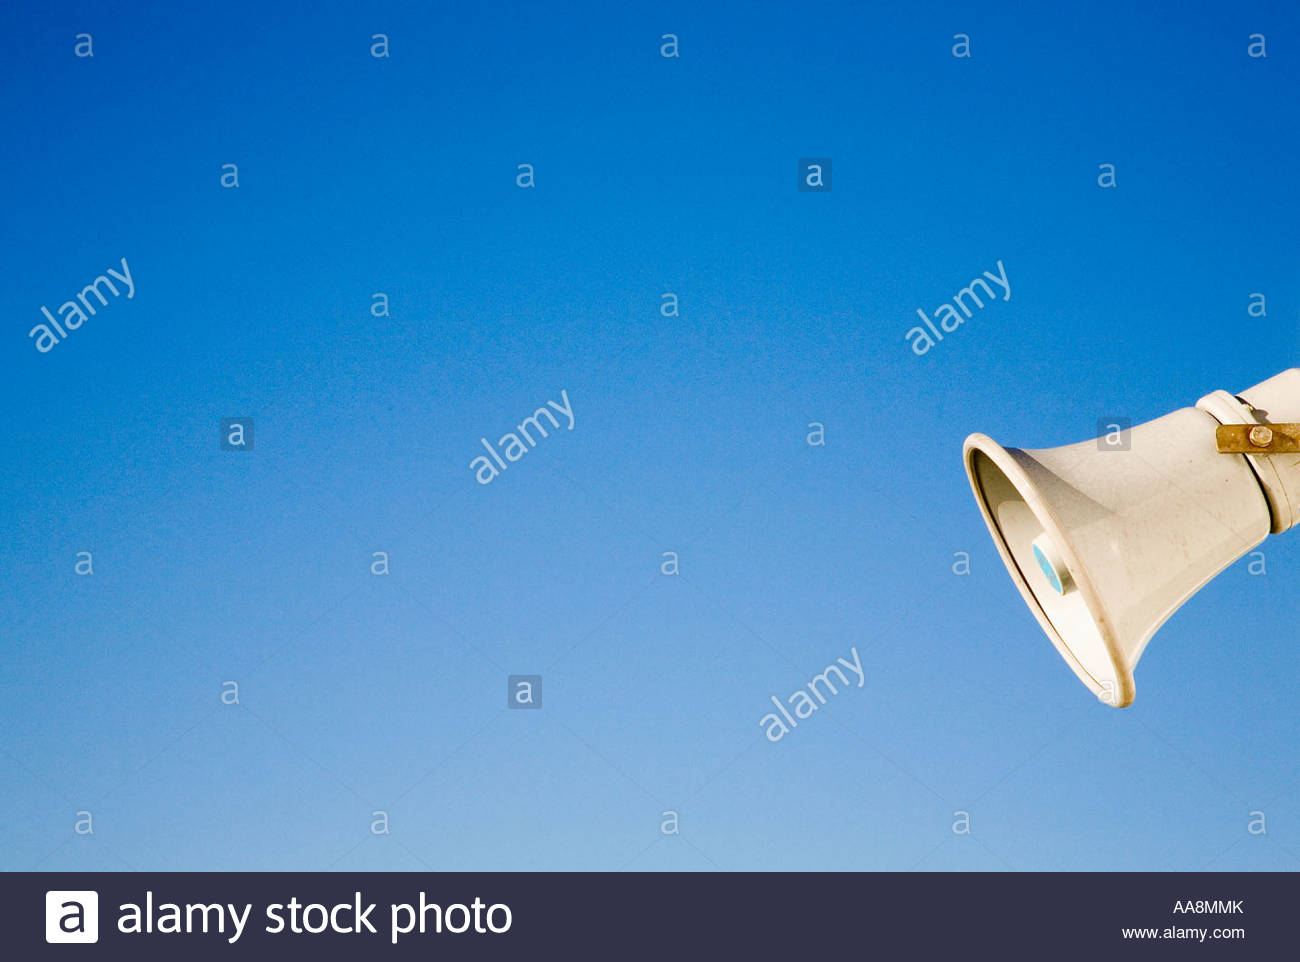 Off-centered view of megaphone on blue background - Stock Image